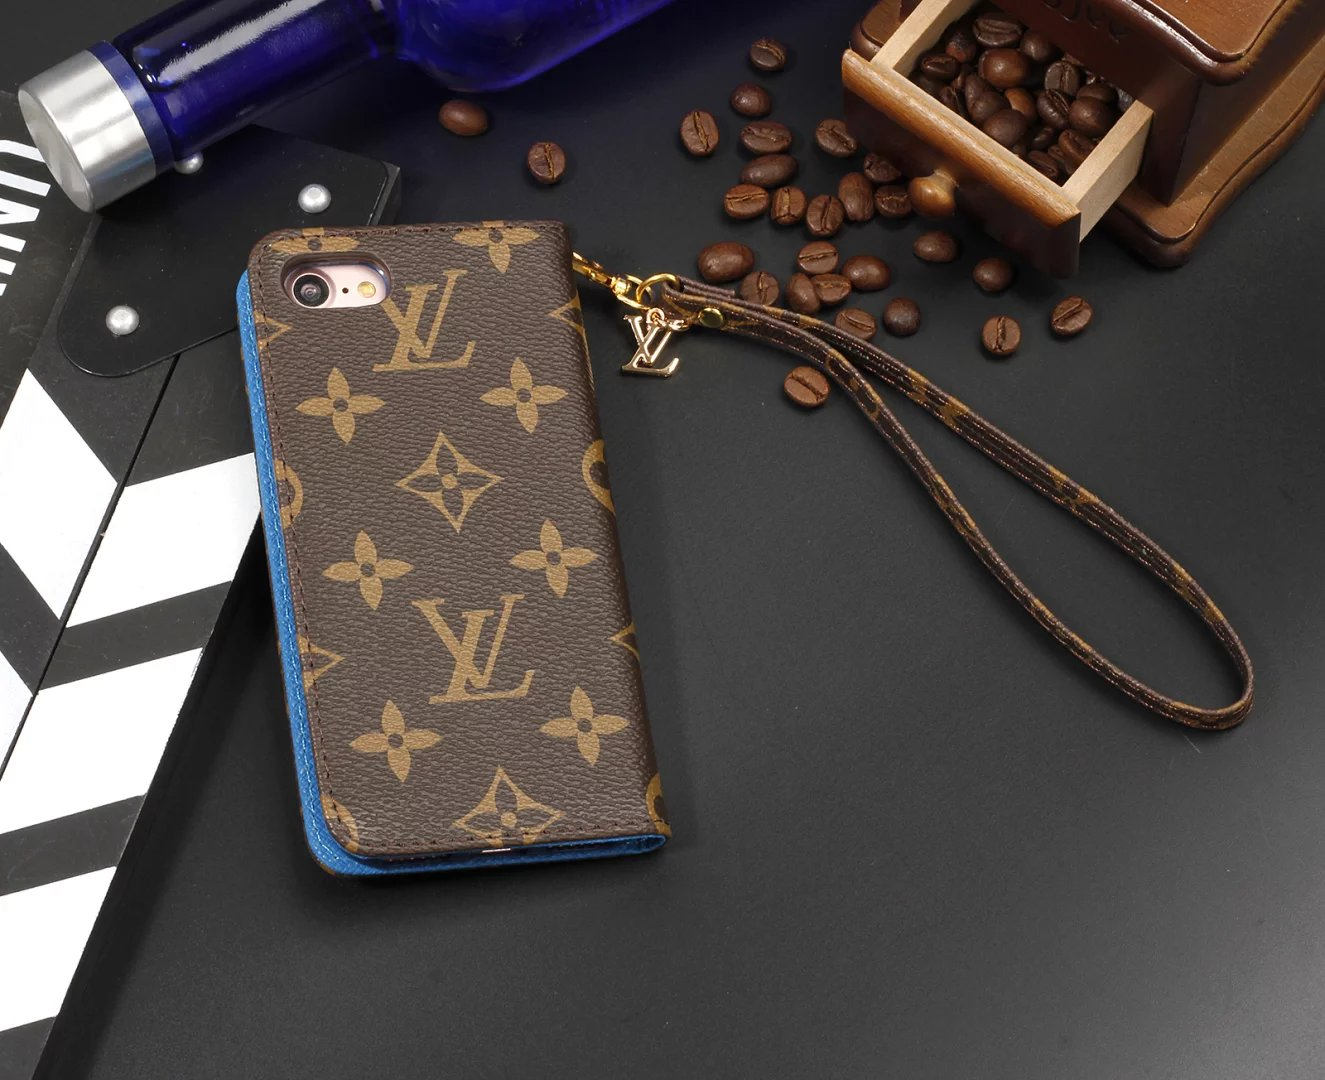 iphone hüllen bestellen schutzhülle iphone Louis Vuitton iphone7 Plus hülle iphone 7 Plus hüllen gute iphone 7 Plus hülle handy ca7 bedrucken las7n iphone hüllen marken handy ca7 7lber machen schutz für iphone 7 Plus